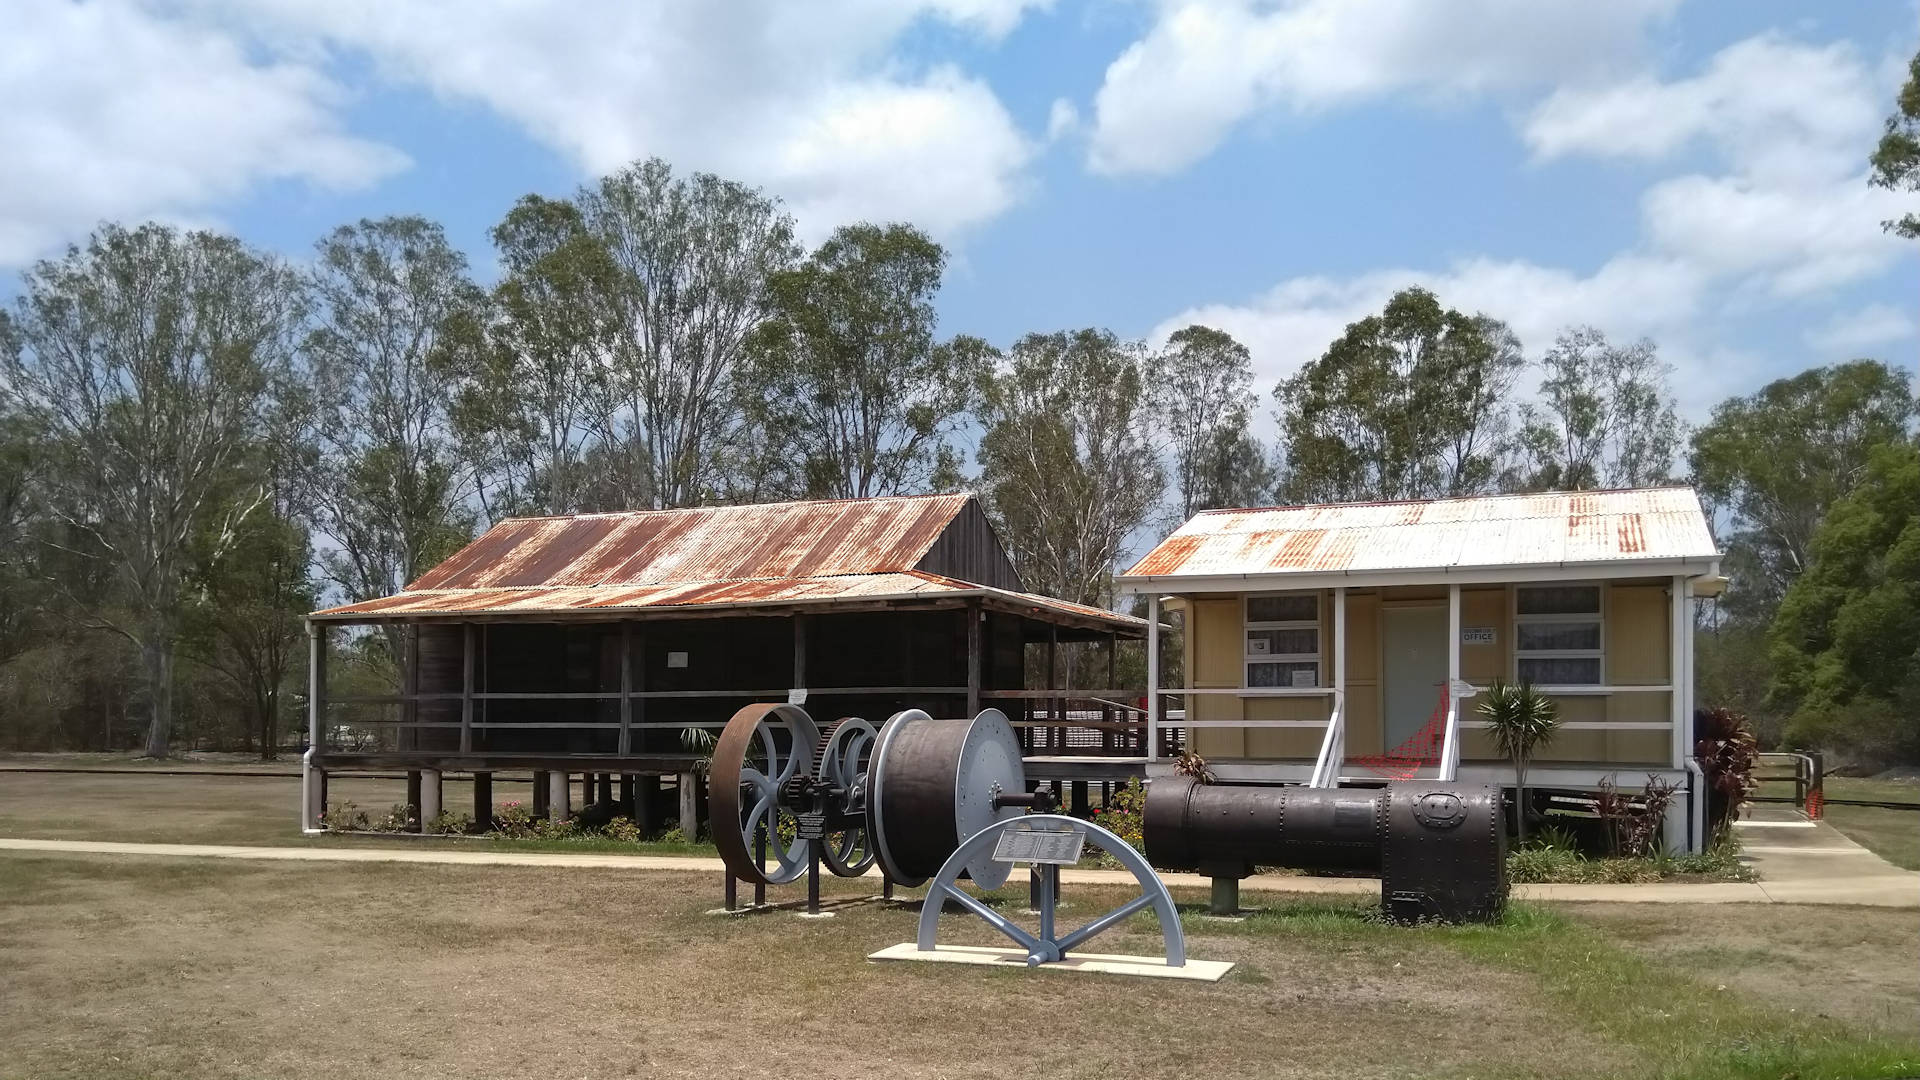 Historical buildings, taken at the historical museum at Howard Queensland